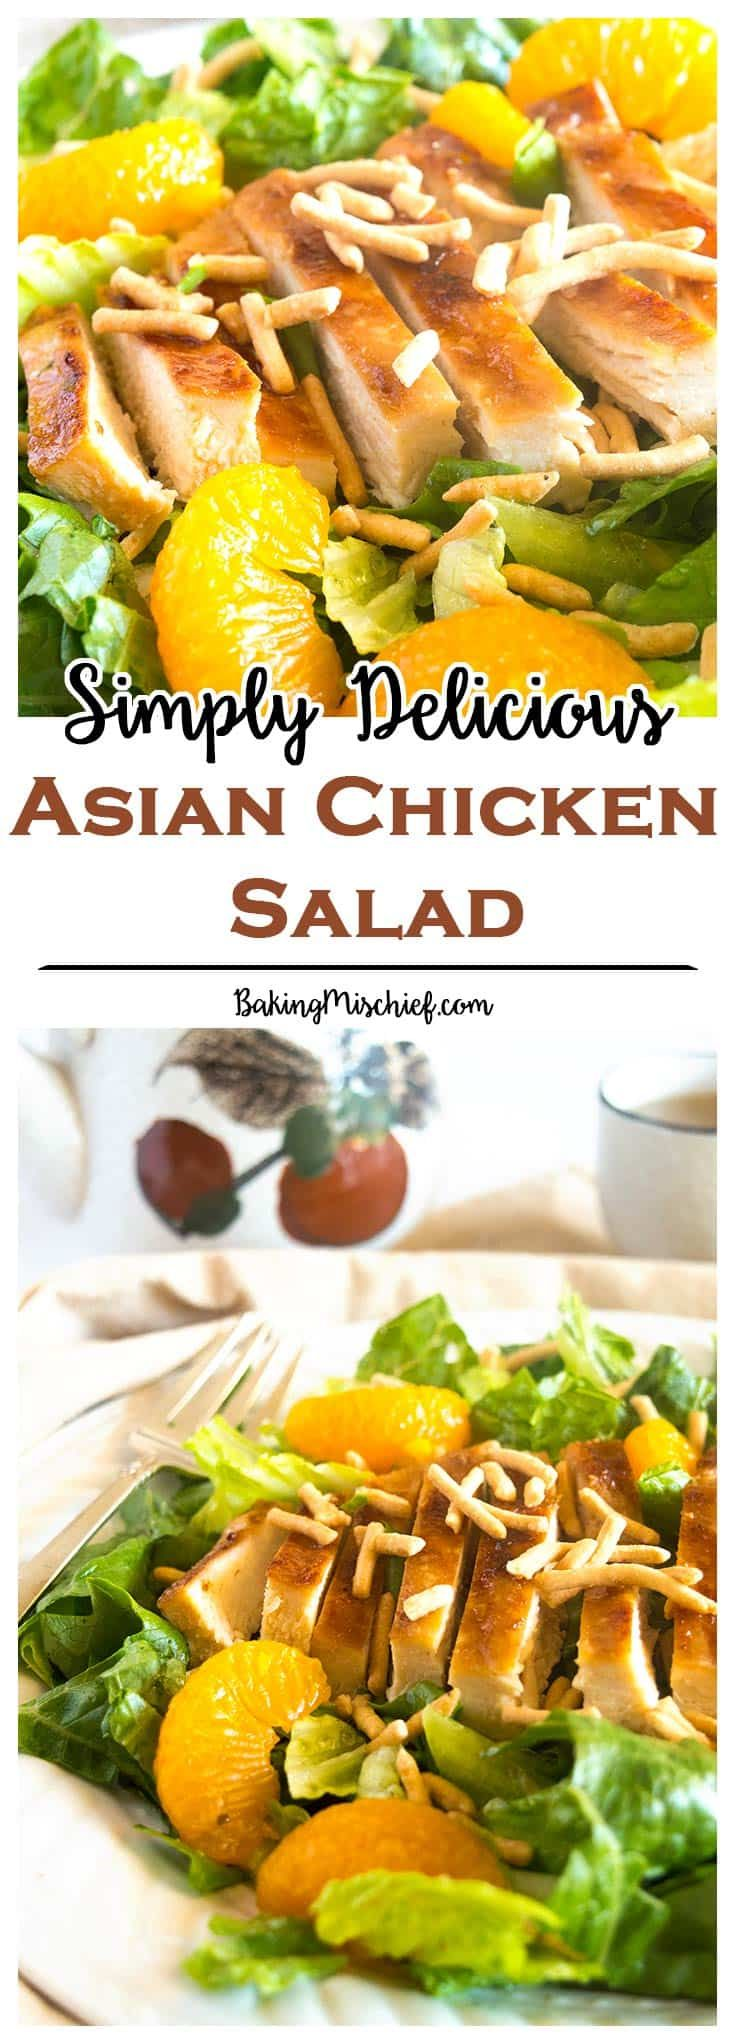 Simply Delicious Asian Chicken Salad